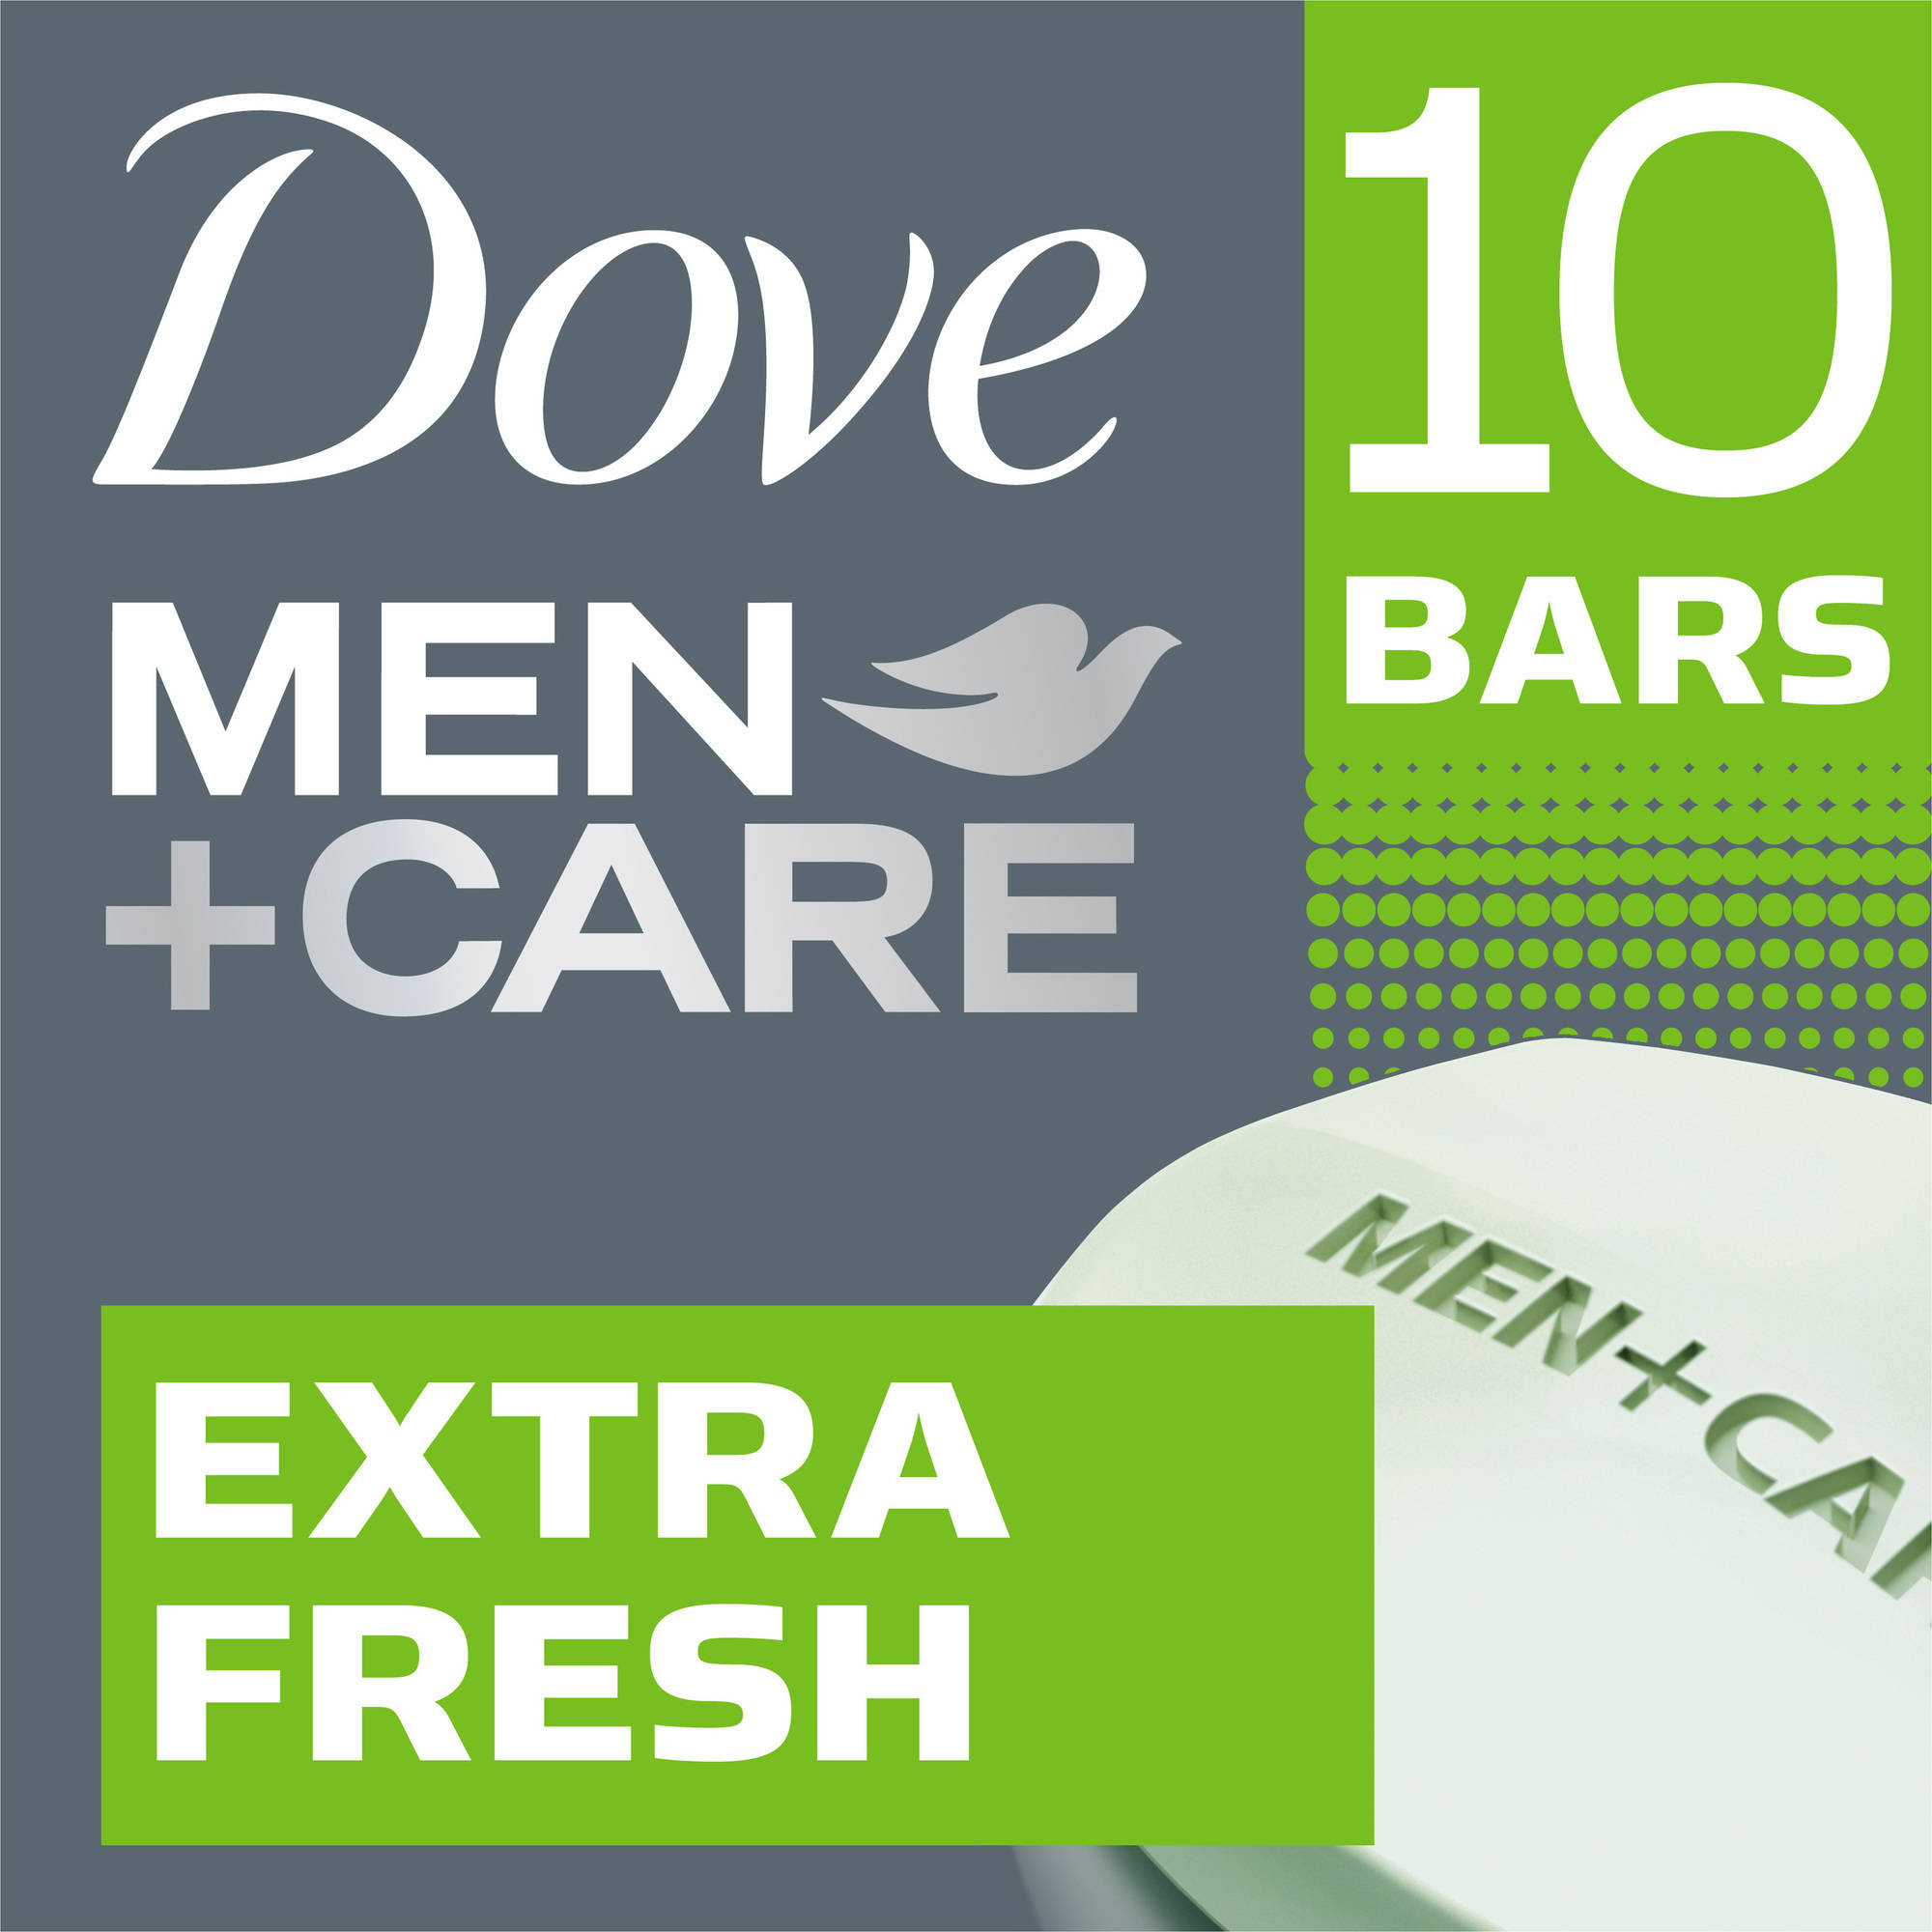 Dove Men+Care Extra Fresh Body and Face Bar, 4 oz, 10 Bar